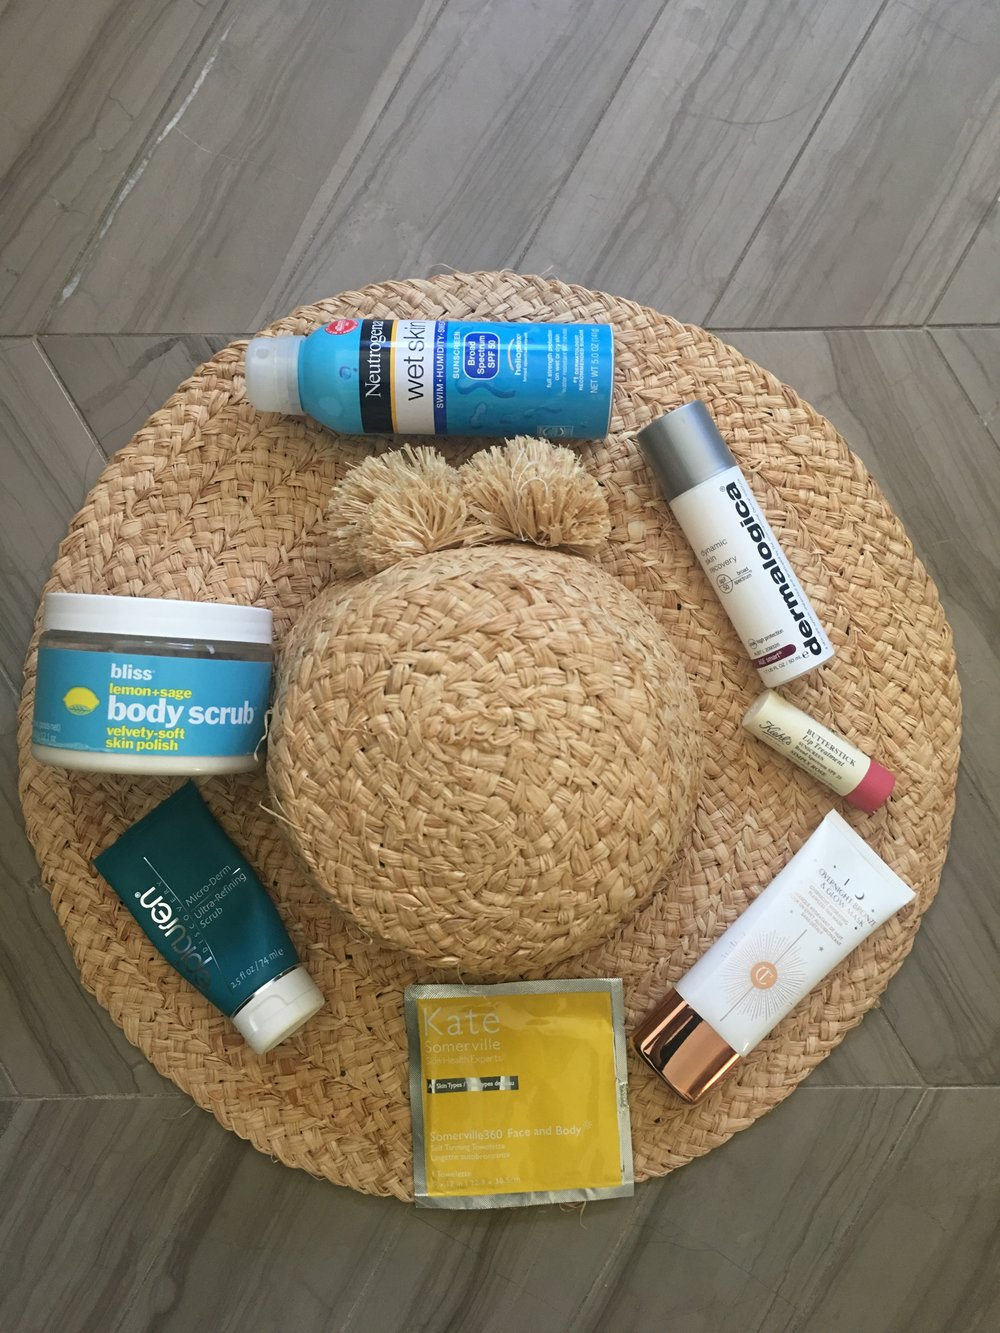 Kate Somerville Tan Towelettes, Epicuren Micro Derm Scrub, Bliss Body Scrub, similar here, Neutrogena Wet Skin  Sunscreen, Dermalogica Dynamic Skin Recovery SPF 50, Kiehl's Butterstick Lip Treatment SPF 25, Charlotte Tilbury Overnight Bronze and Glow Mask.